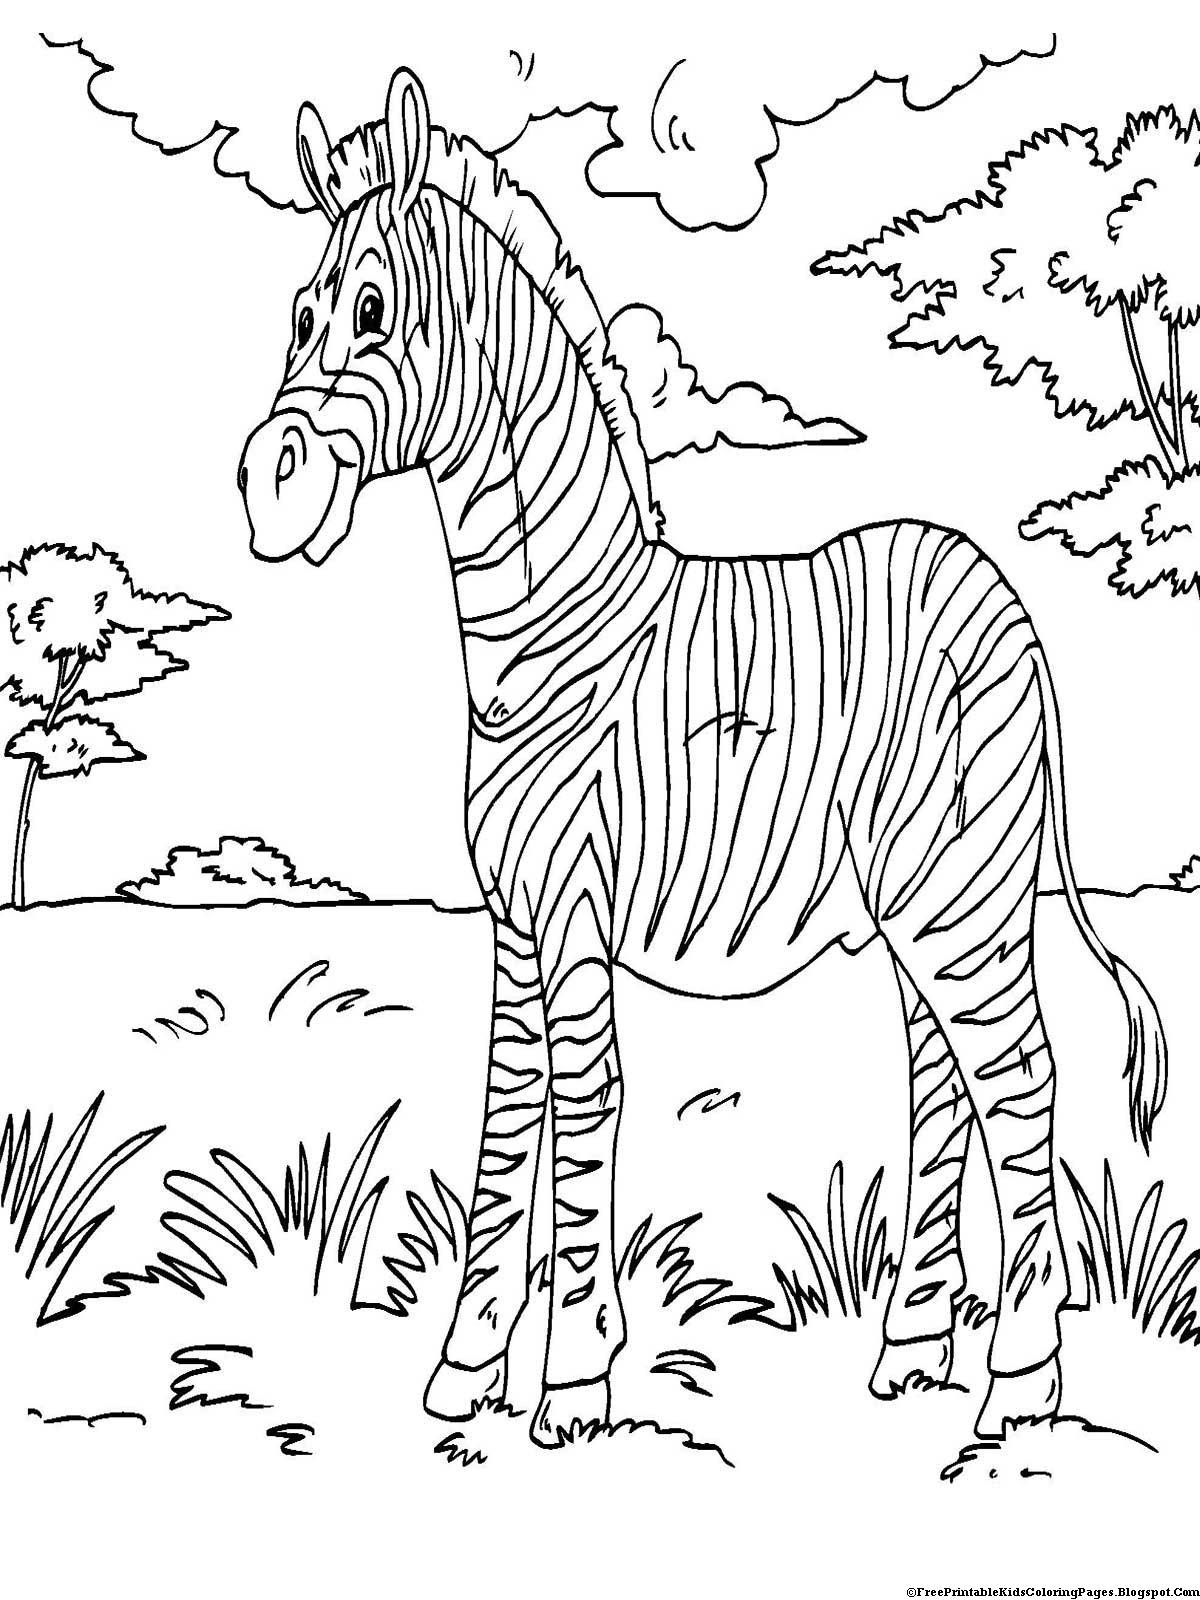 Zebra Coloring Pages - Free Printable Kids Coloring Pages